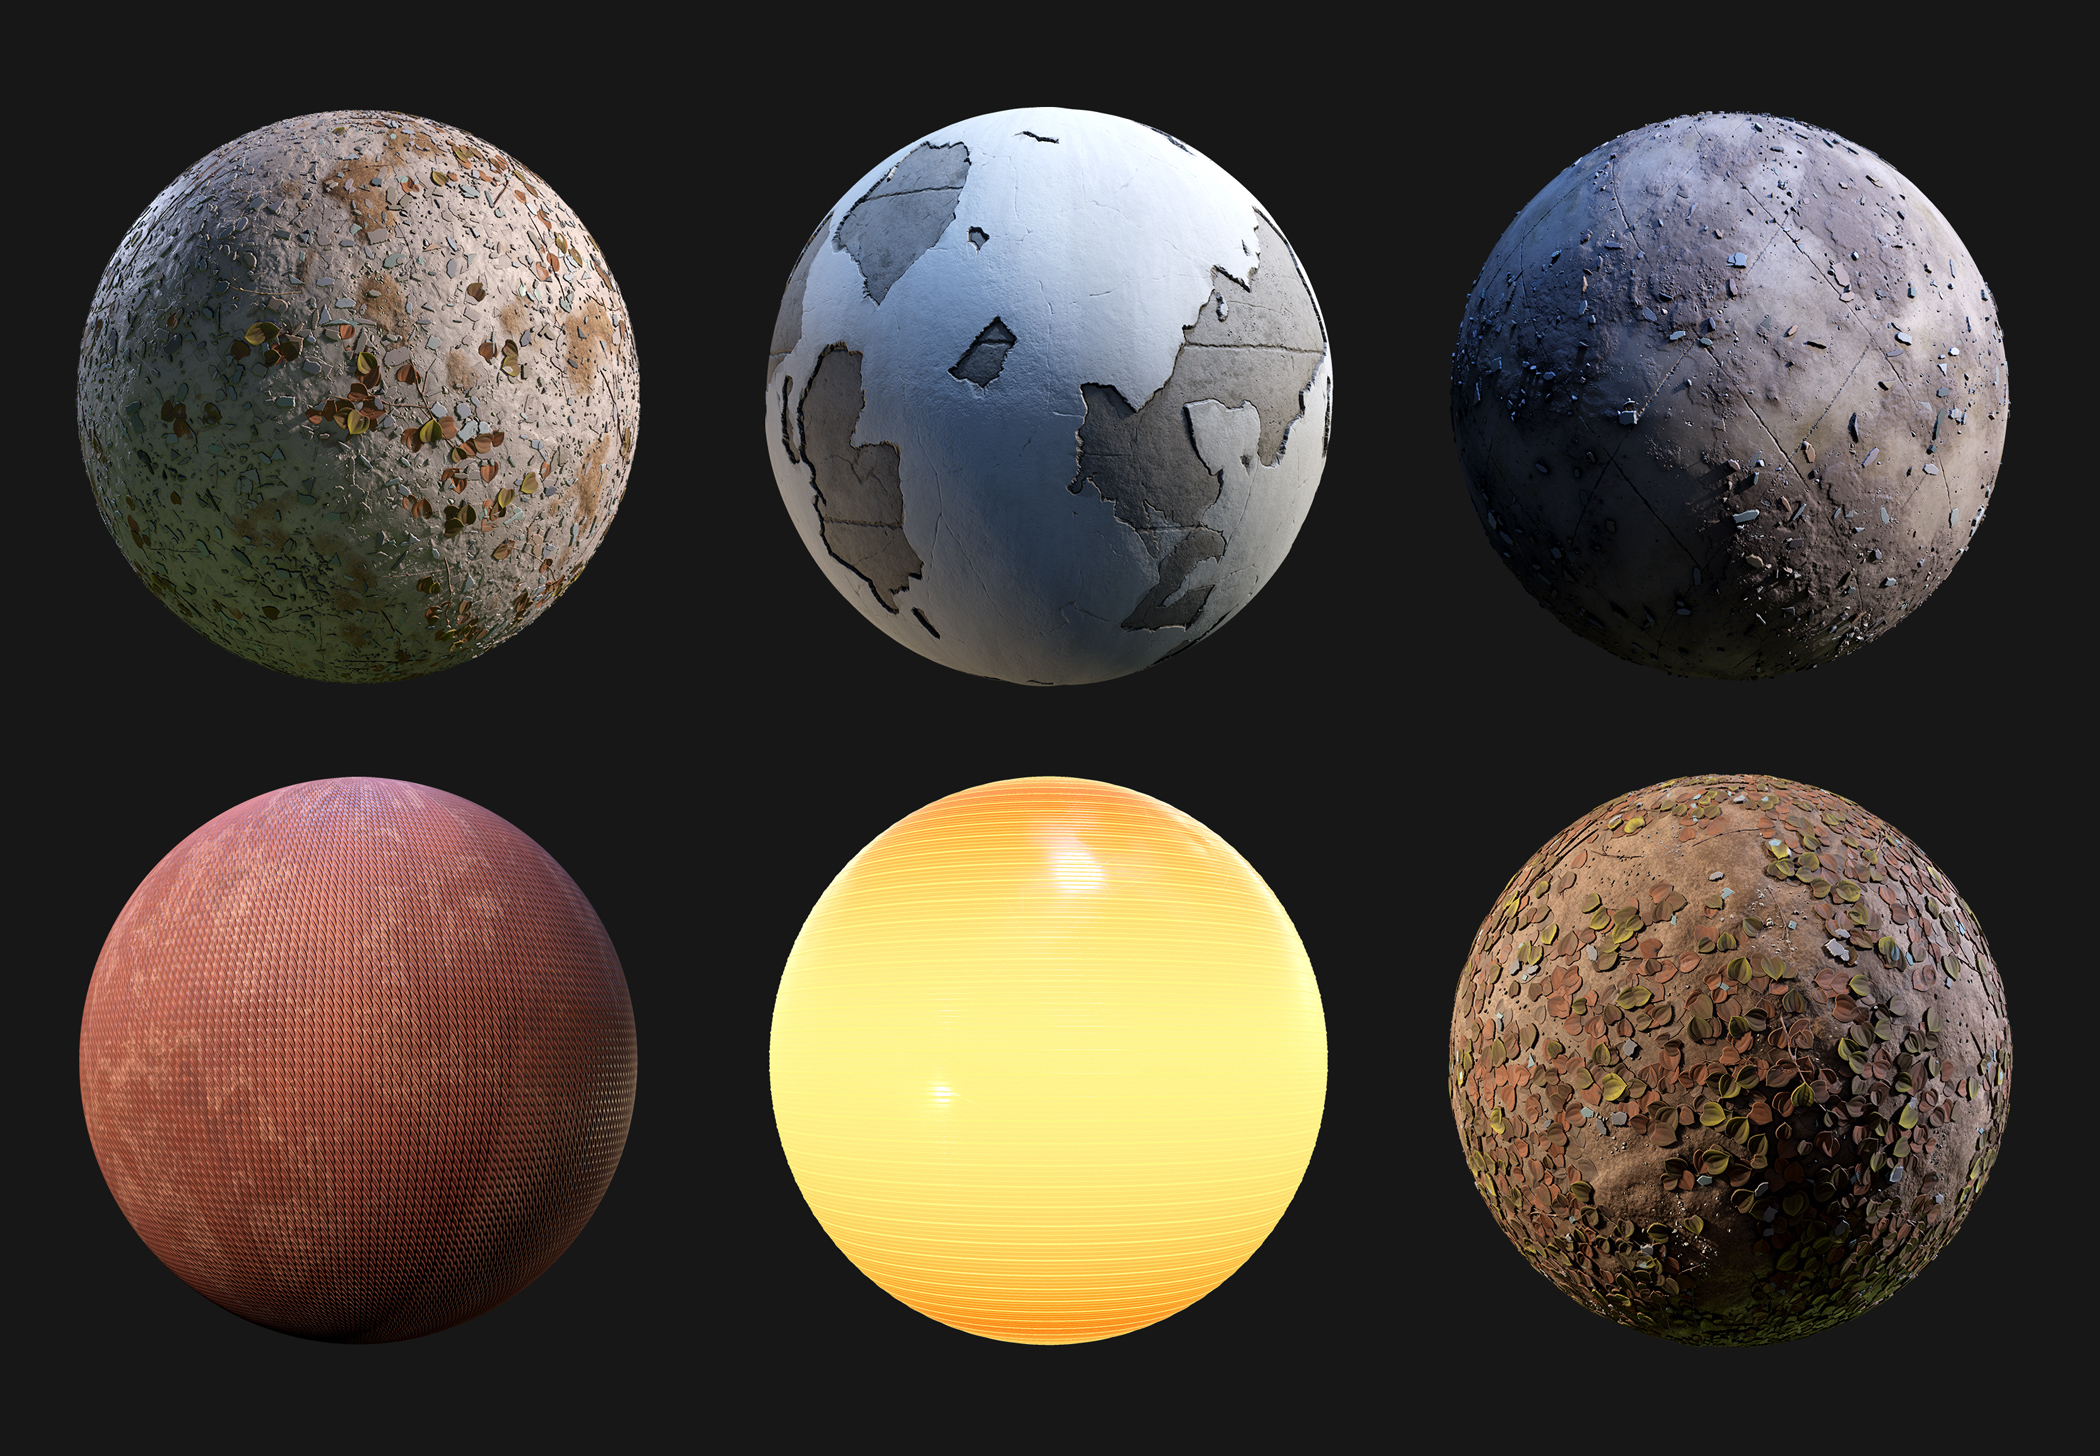 Some substances I made for the hydro plant scene. All 100% procedural.